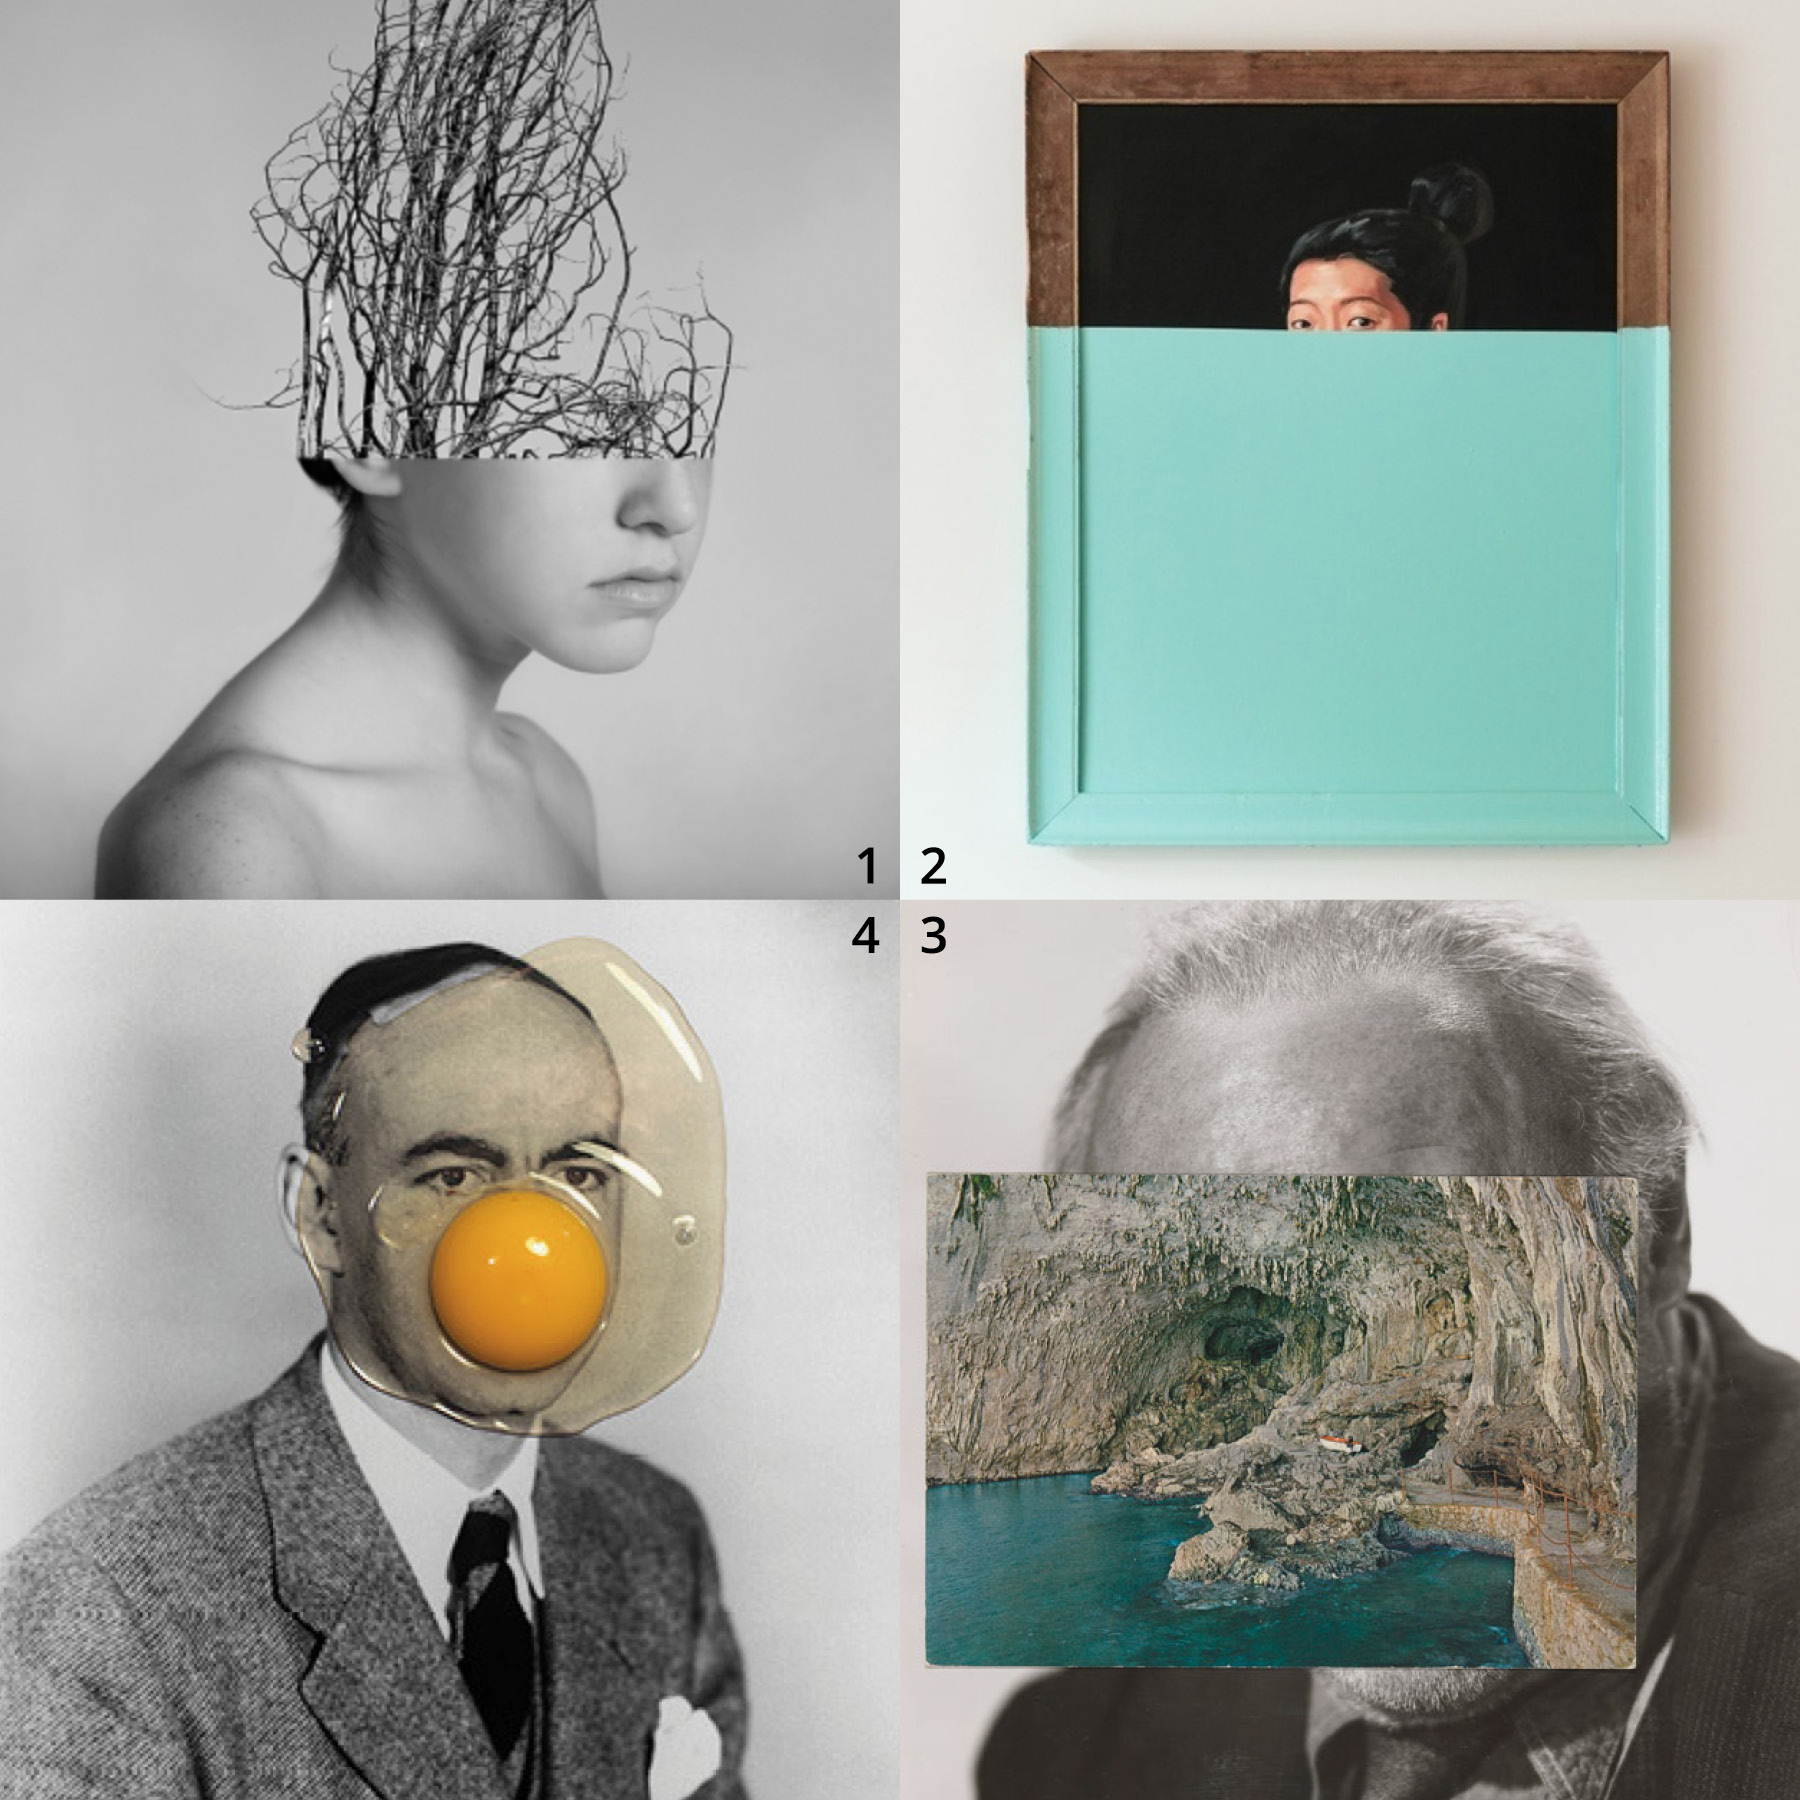 Clockwise from top left:      1 From     Simulations  by Alexandra Bellissimo  2 From     Dipped Paintings  by Oliver Jeffers  3     Mask CII  by John Stezaker   4   NASA Agent + 1 Egg  by Brest Brest Brest